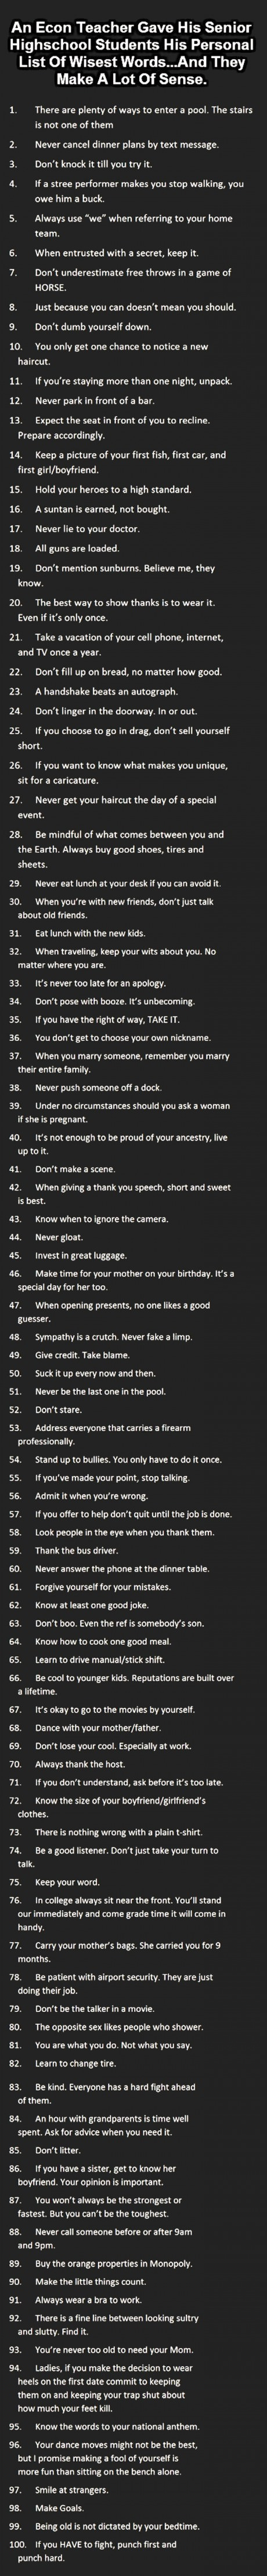 life tips from a high school teacher to his senior students, 100 ways to life